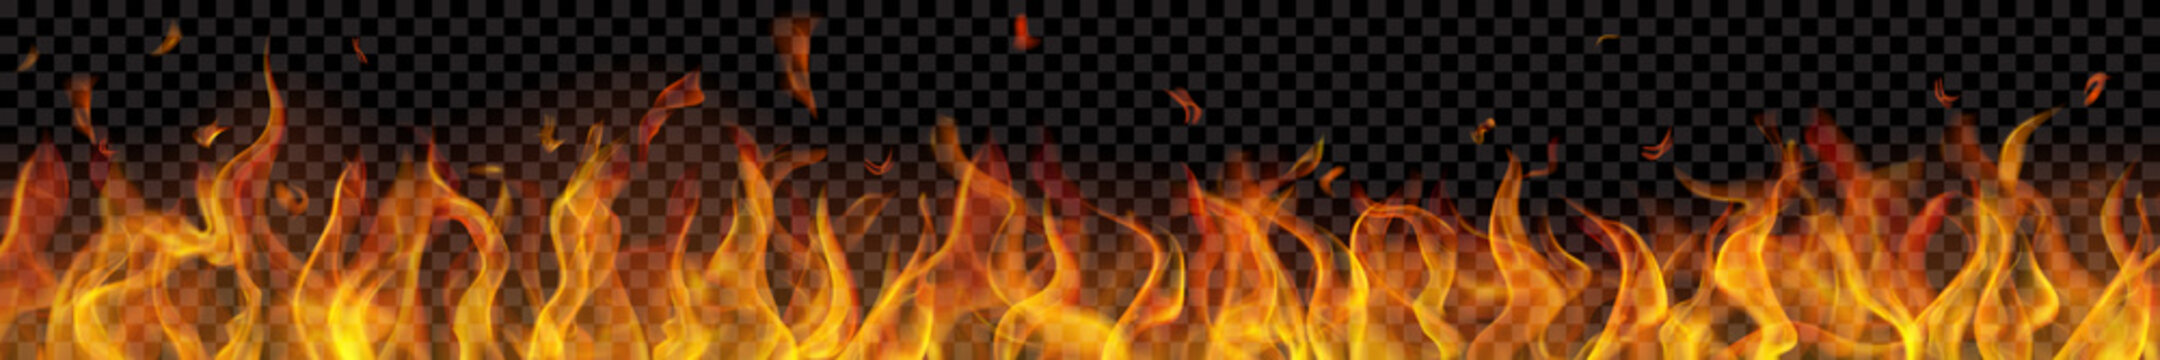 Translucent long fire flame with horizontal seamless repeat on transparent background. For used on dark backgrounds. Transparency only in vector format